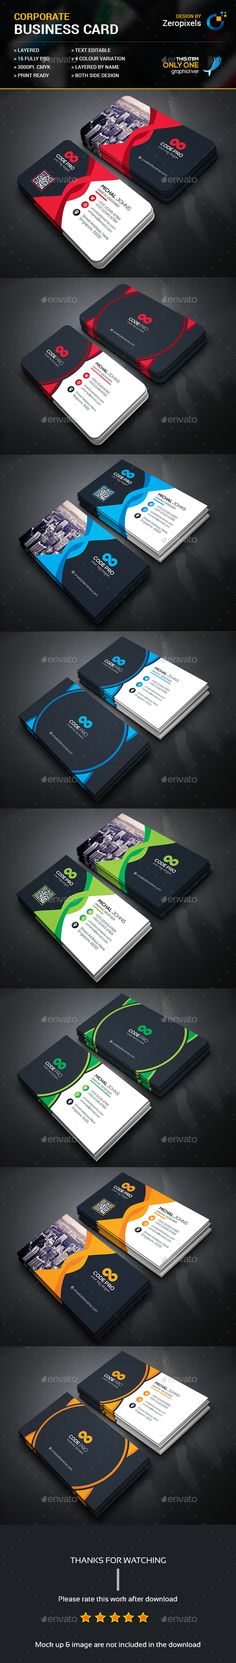 Buy Modern Business Card Bundle by zeropixels on GraphicRiver. FEATURES: Easy Customizable and Editable Business card in with bleed CMYK Color Design in 300 DPI Resolut. Buy Business Cards, Modern Business Cards, Business Card Design, Rollup Banner, Letterhead, Your Cards, Graphic Design, Card Designs, Card Templates